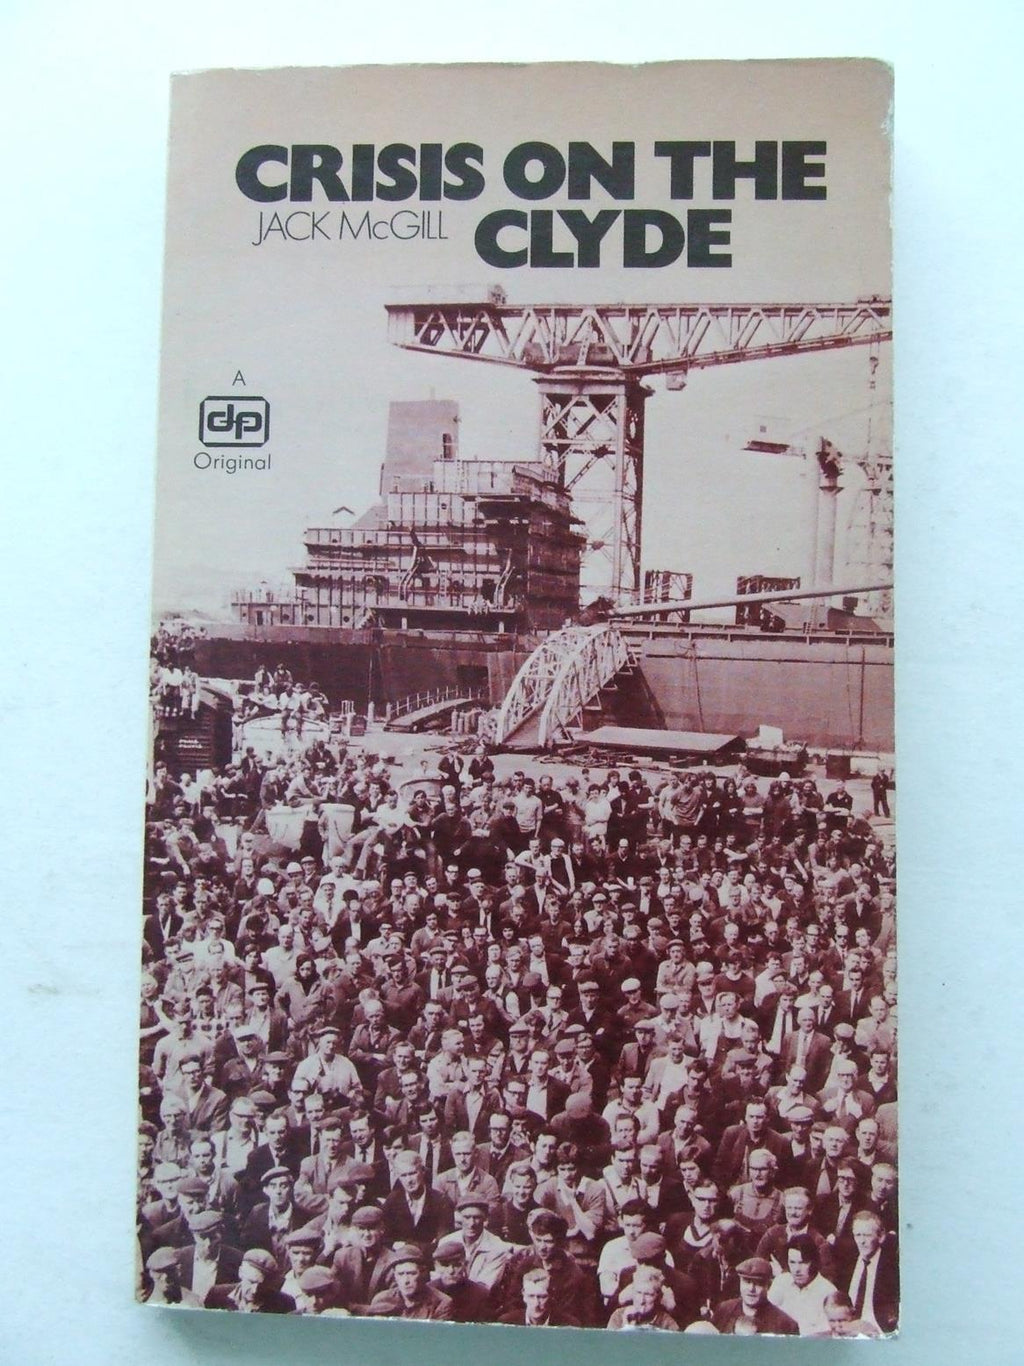 Crisis on the Clyde, the story of the Upper Clyde shipbuilders